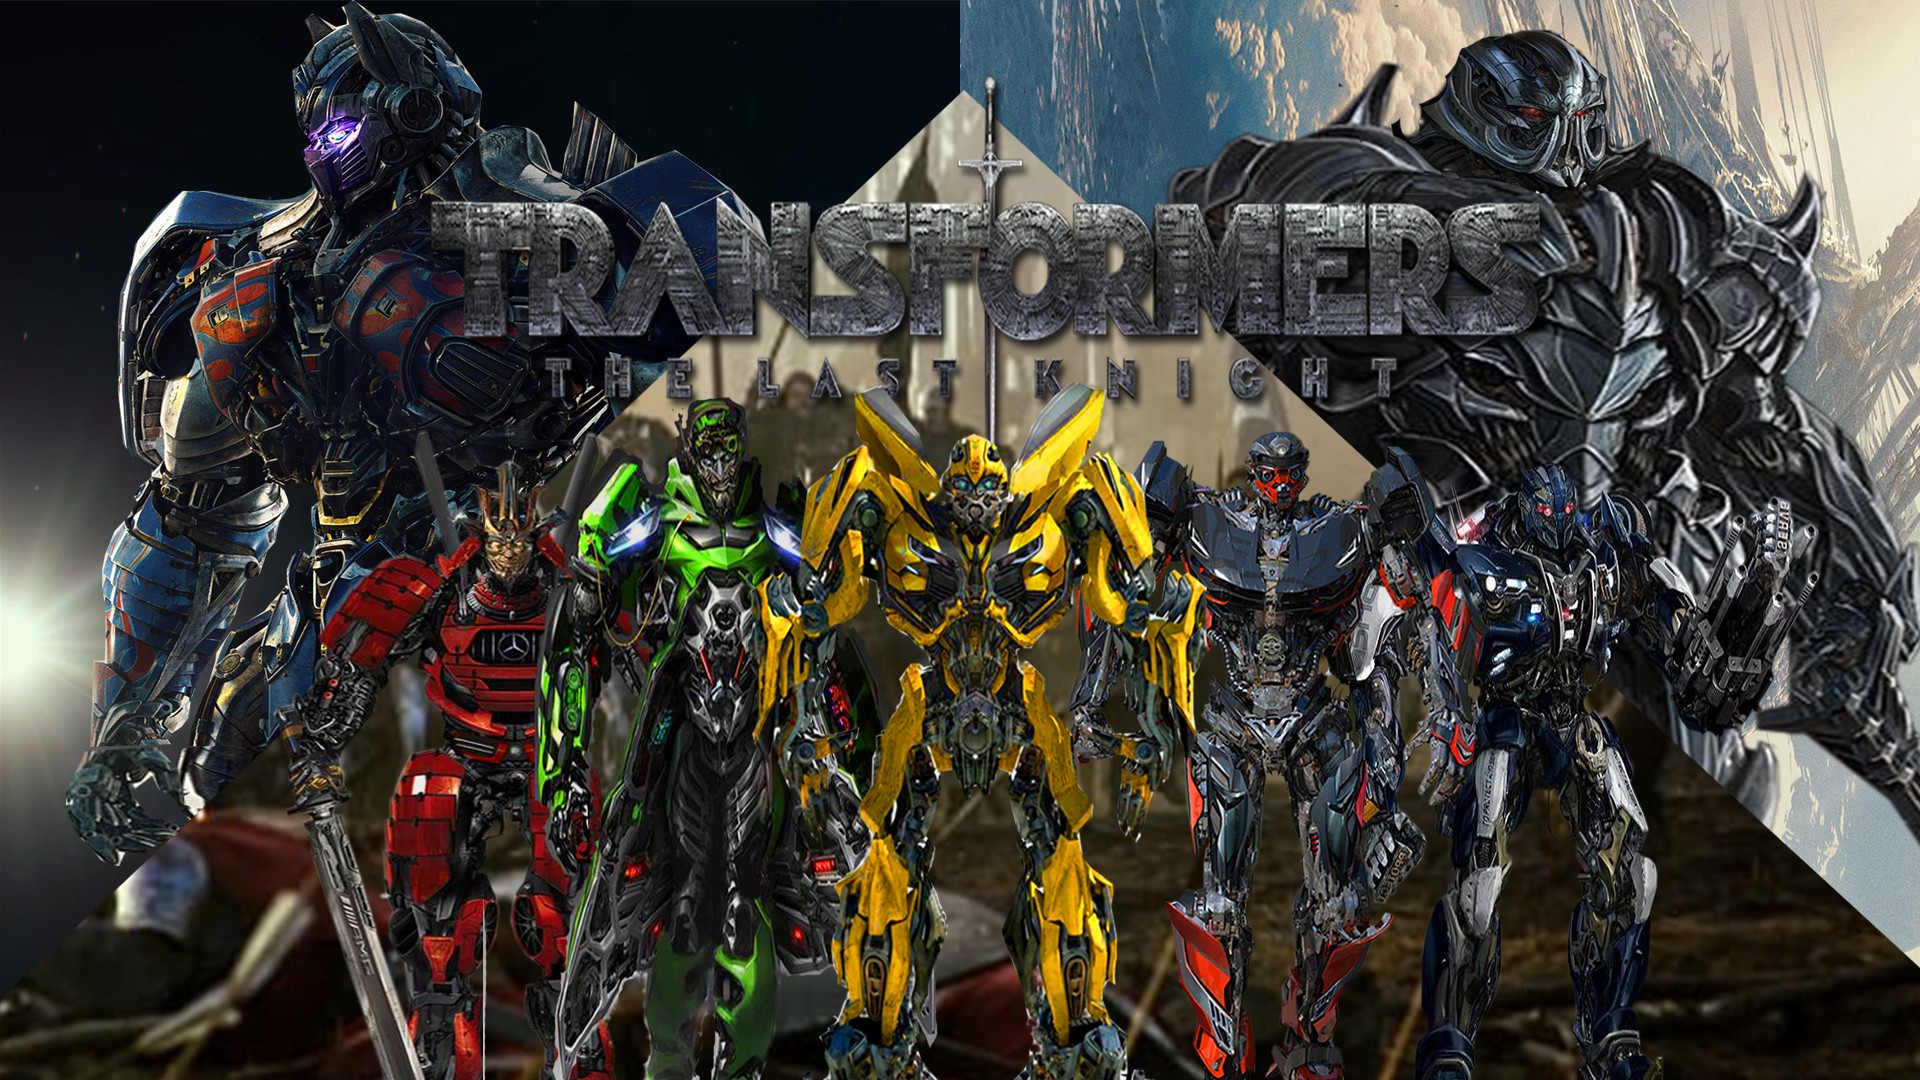 Transformers The Last Knight Wallpapers | HD Wallpapers